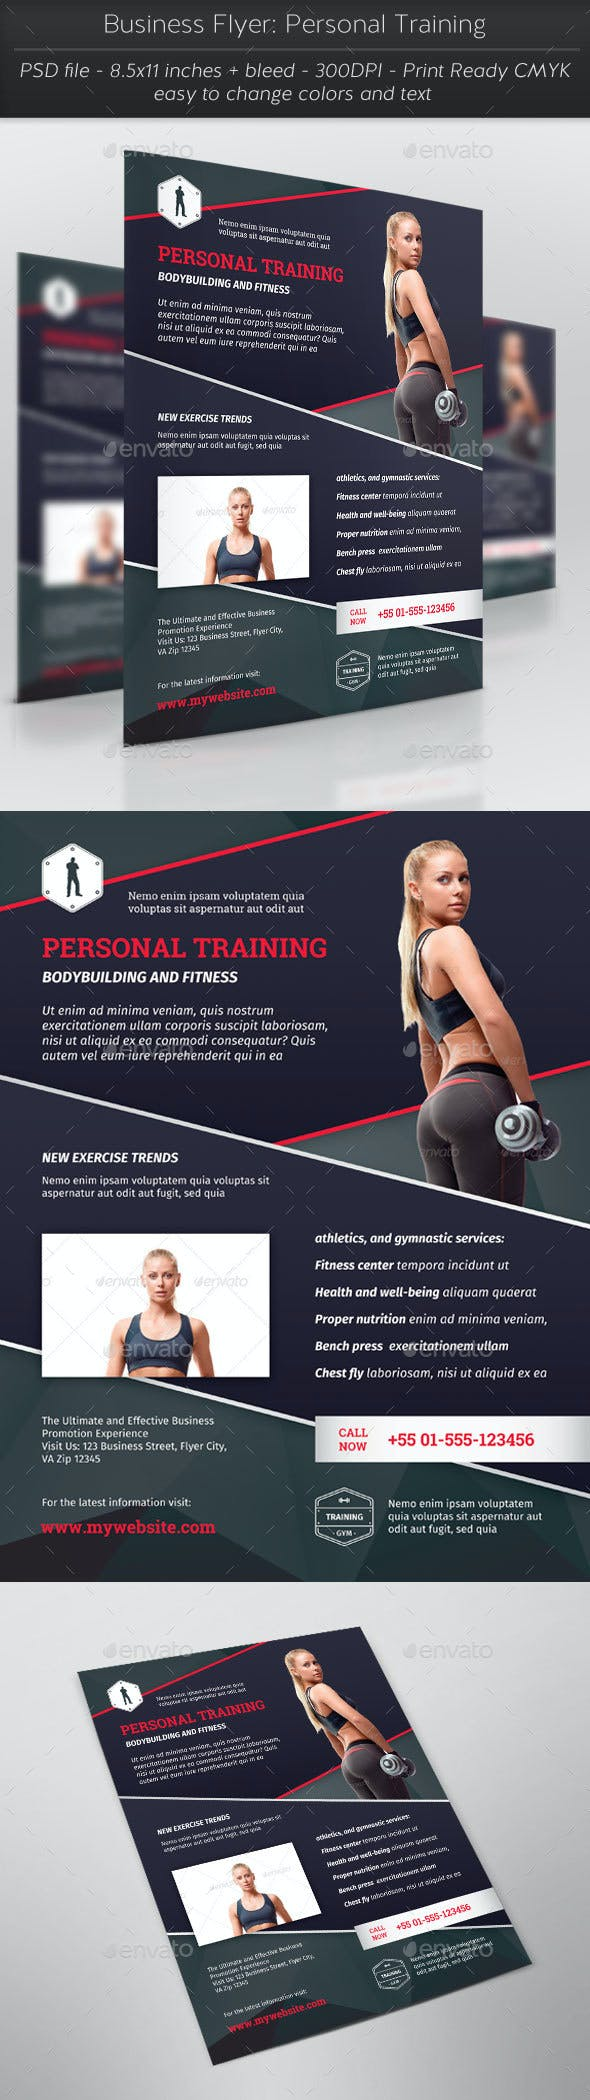 business flyer personal training by thefaint graphicriver